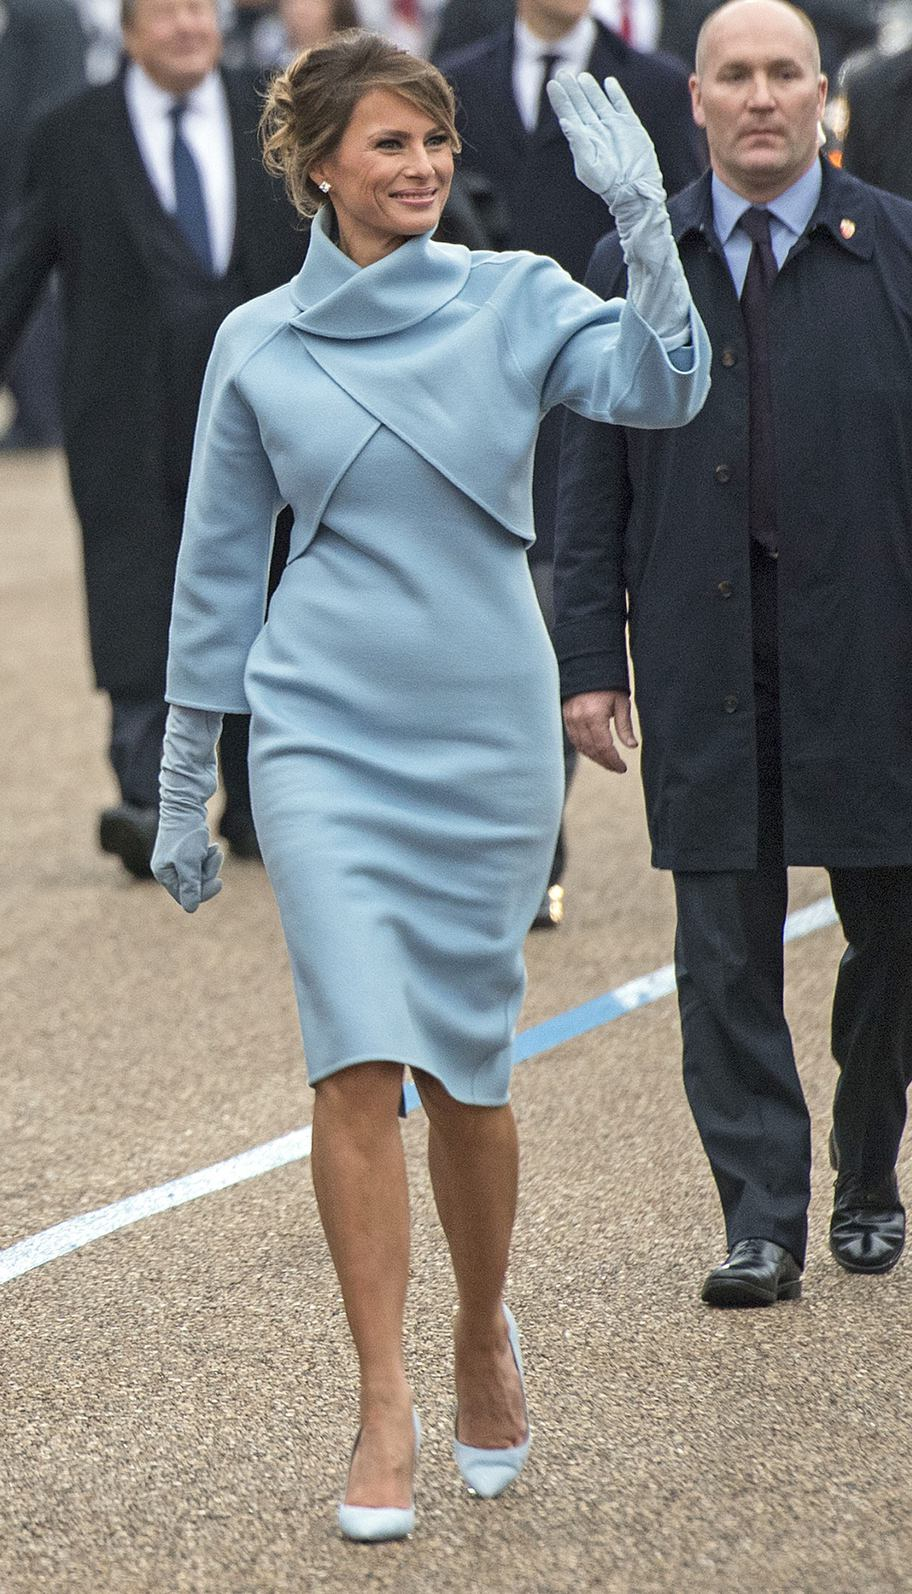 First Lady Melania Trump walk in the inaugural parade after President Trump was sworn-in as the 45th President in Washington, D.C. on January 20, 2017. Credit: Kevin Dietsch/UPI /CNP/MediaPunch Credit: MediaPunch/face to face